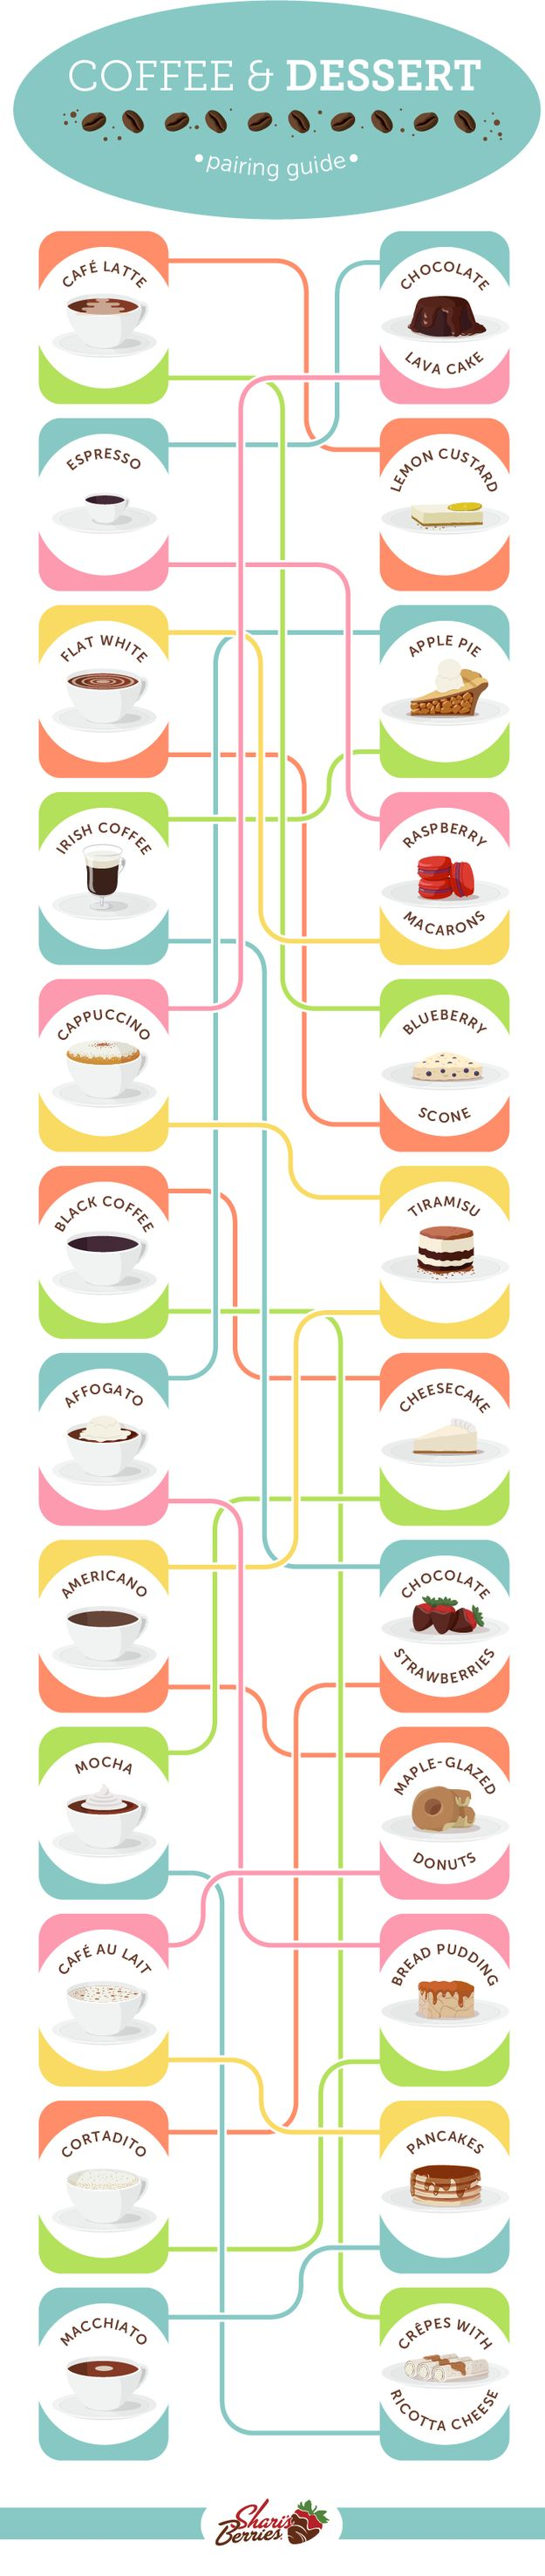 This coffee and dessert pairing chart:                                                                                                                                                                                 More